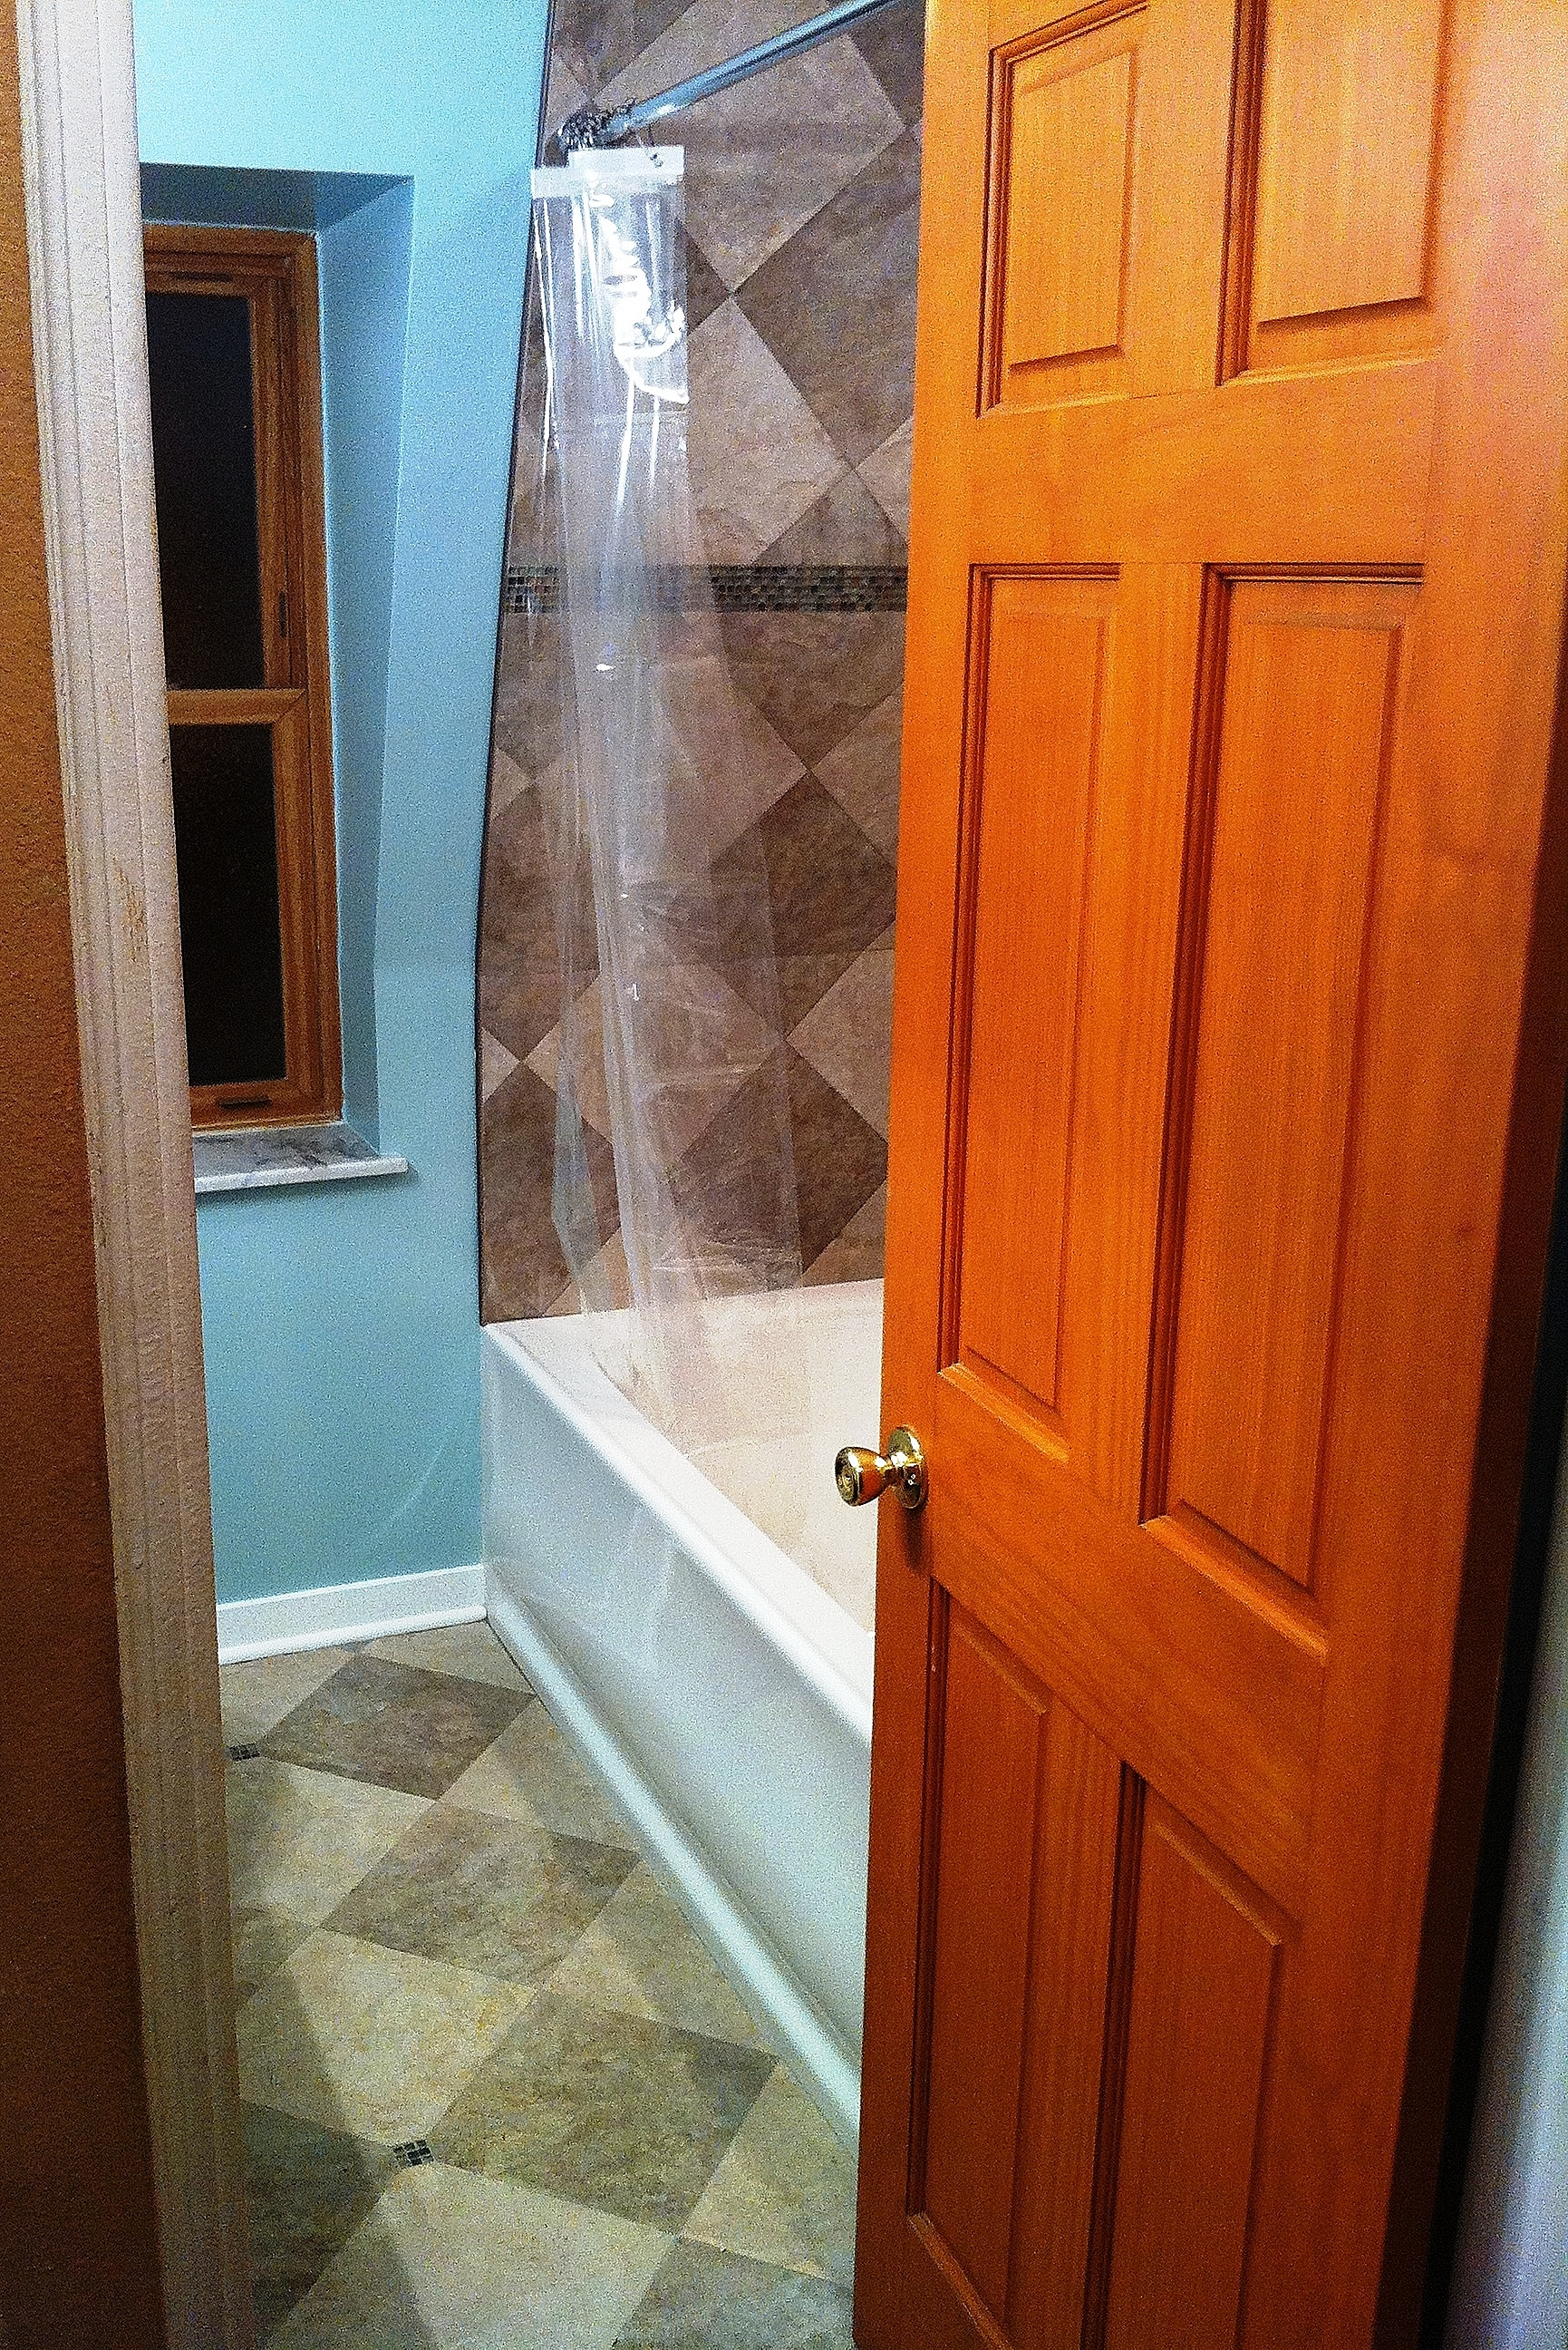 See a complete project video showing the remodeling project from start to finish!